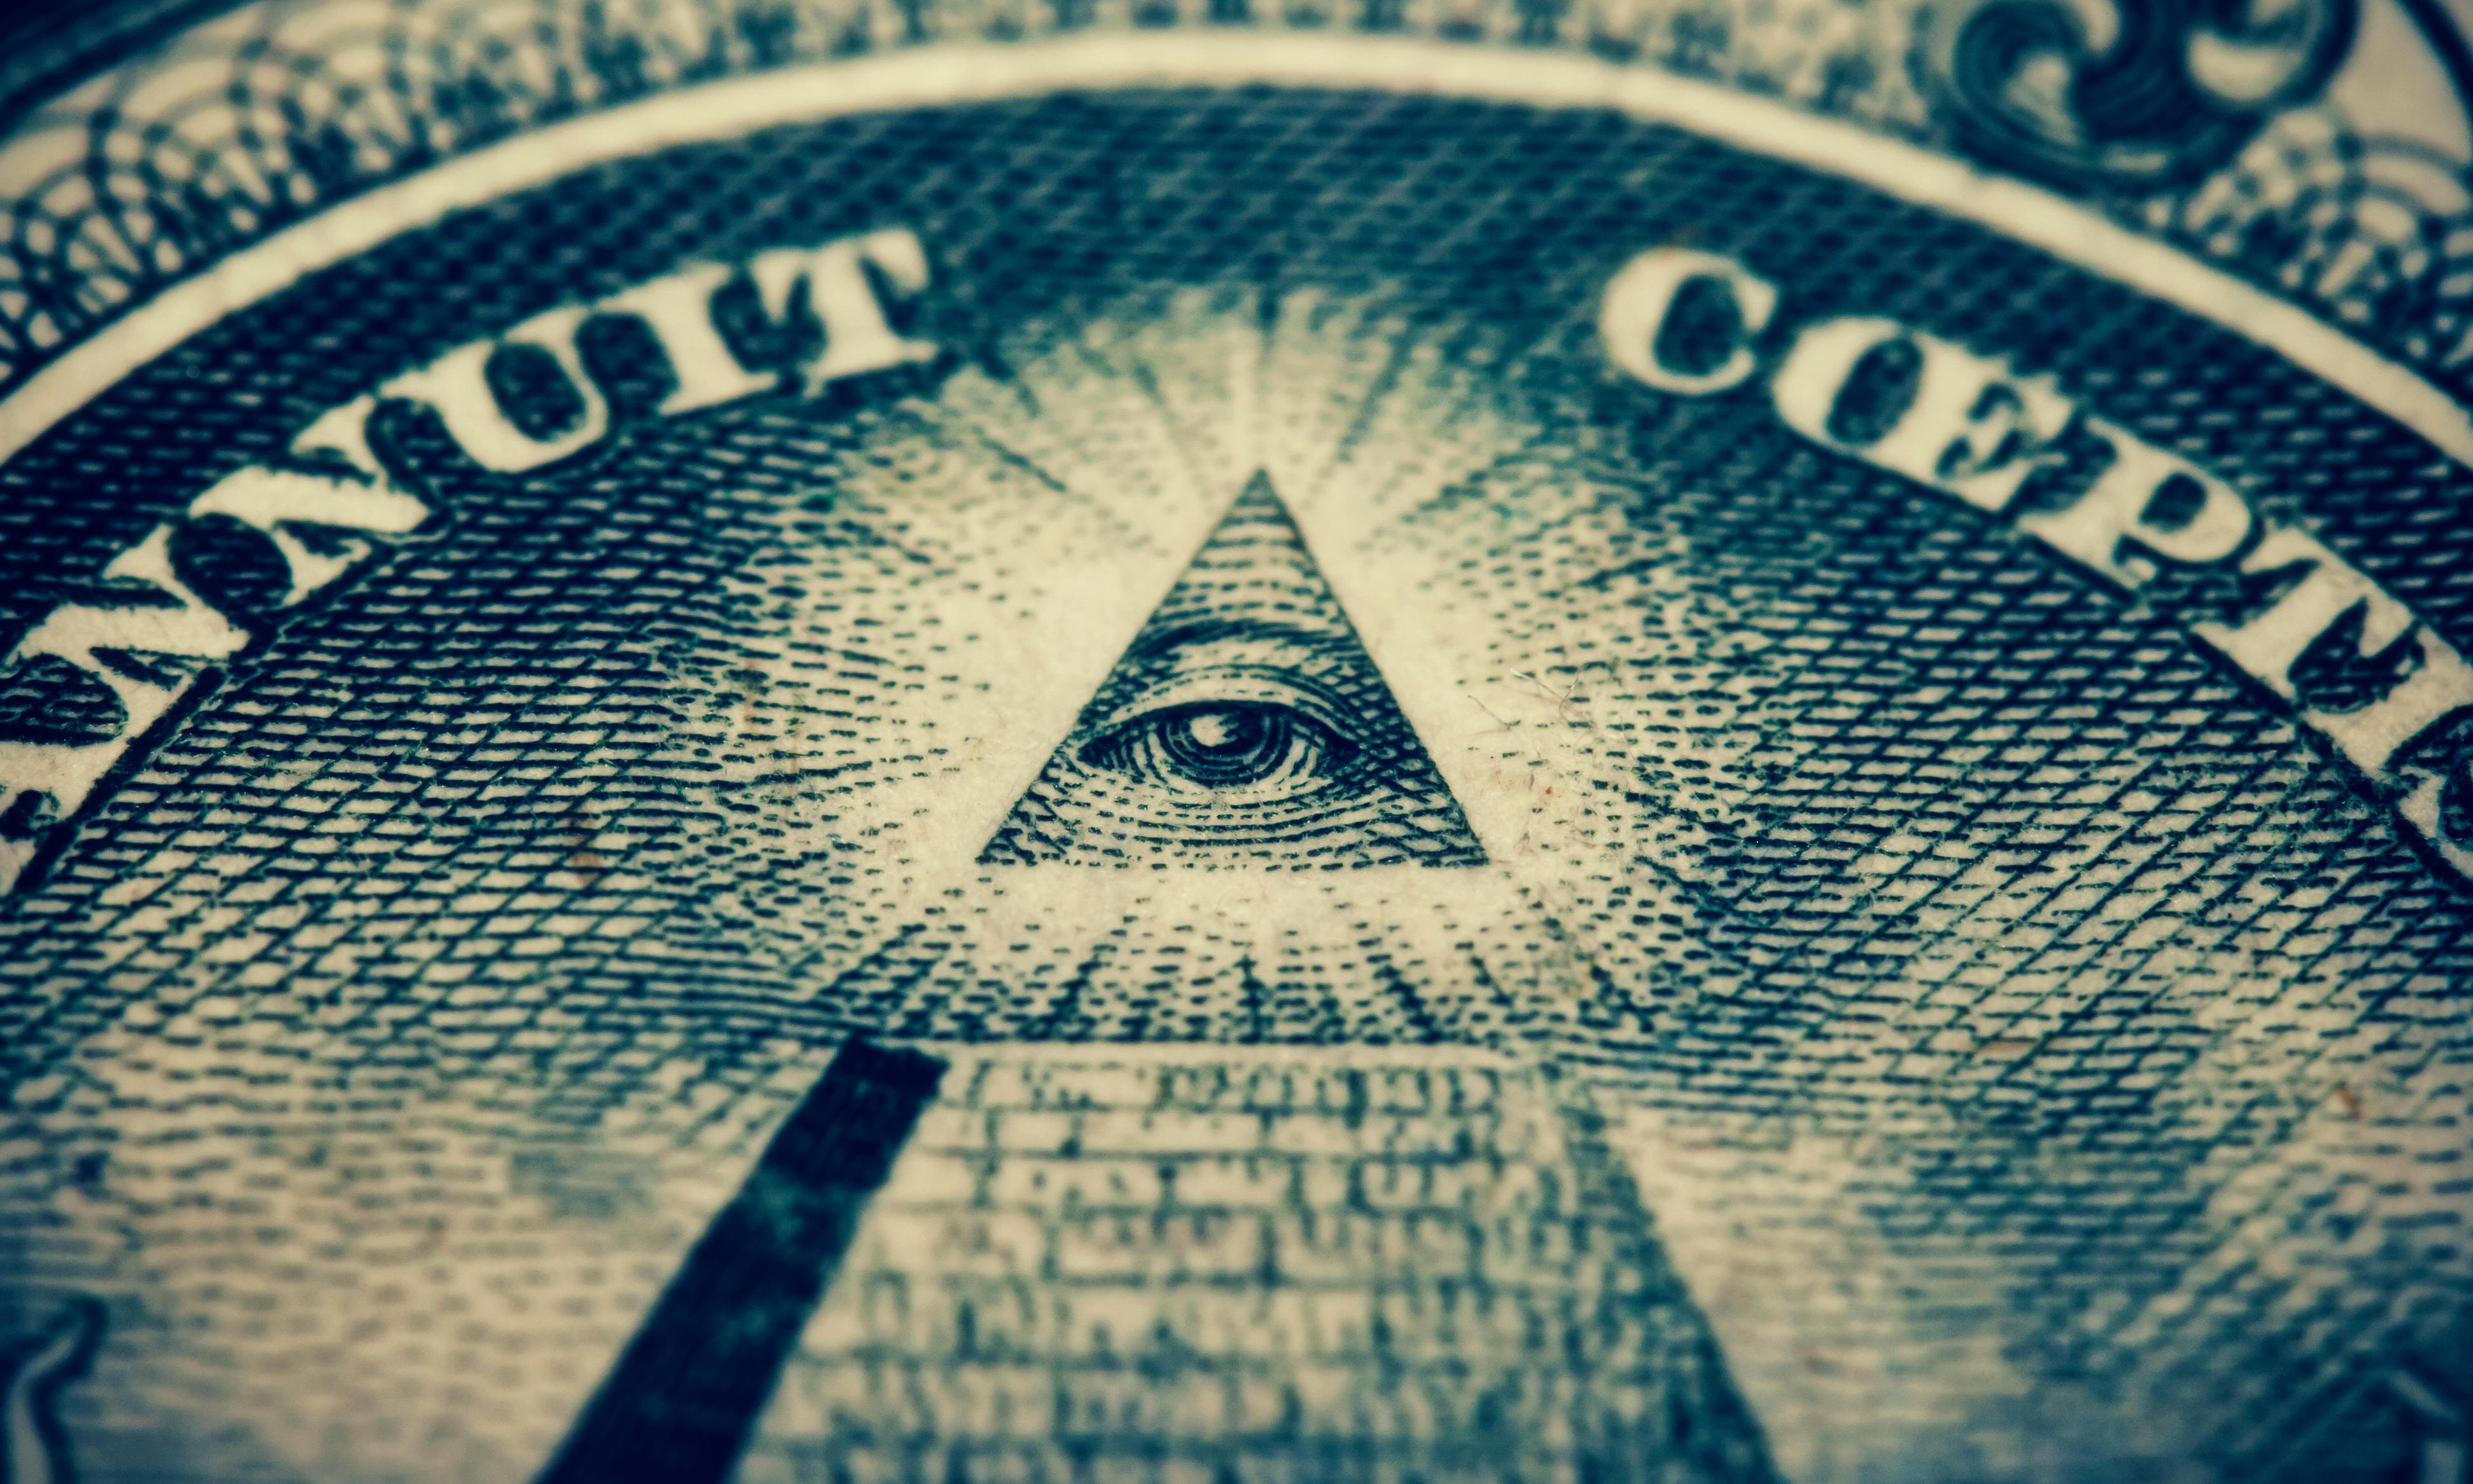 Does the Illuminati control the world? Maybe it's not such a mad idea